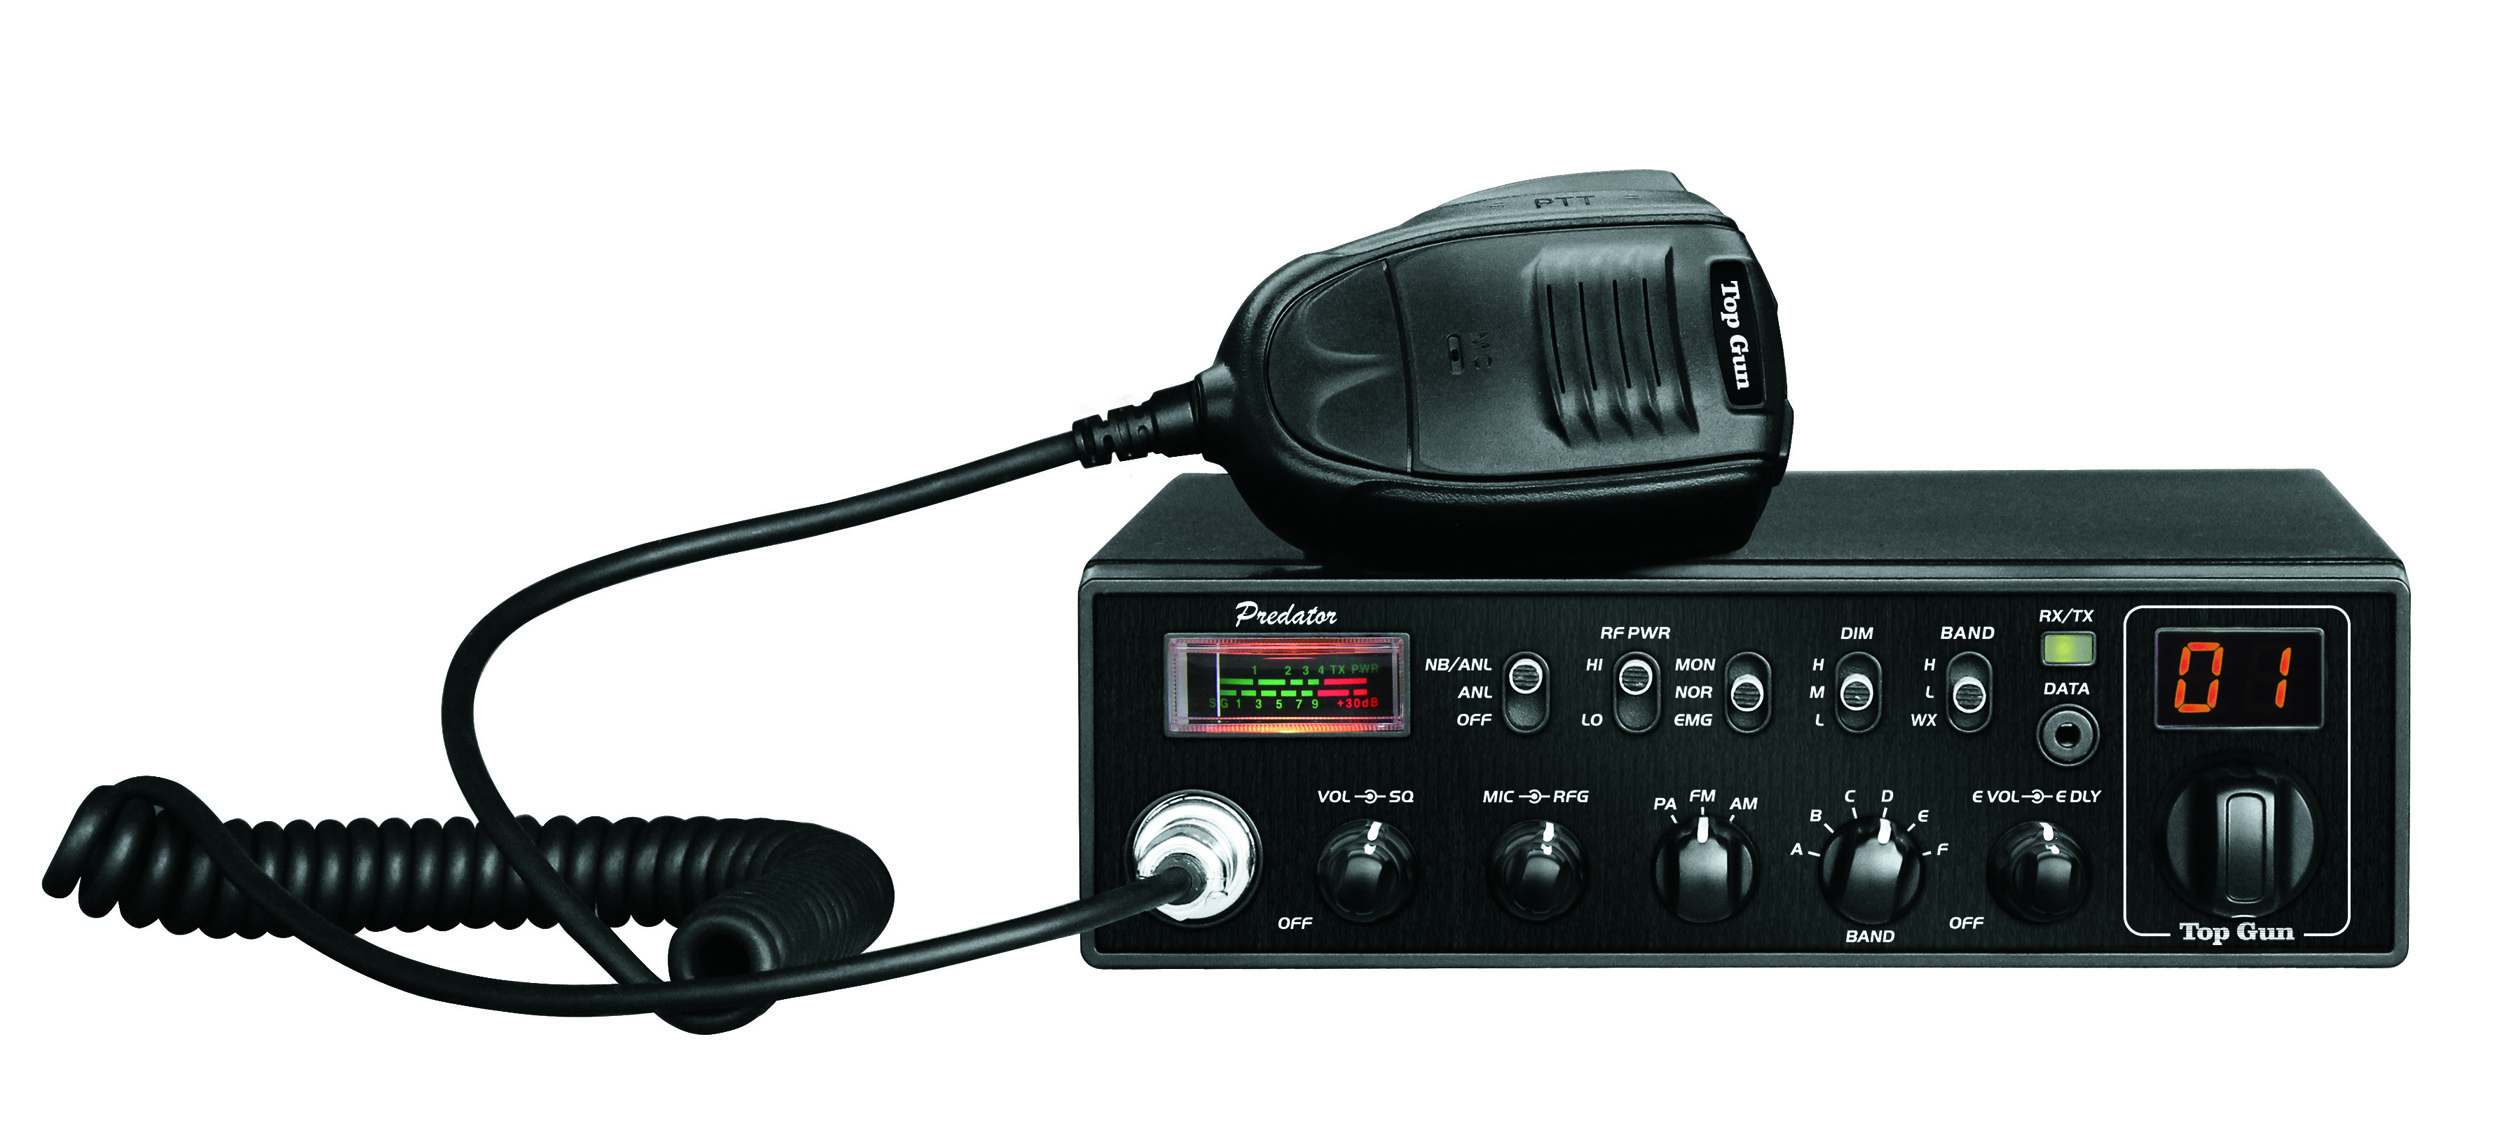 Top Gun Technologies Predator - 10 Meter Amateur Radio with Weather